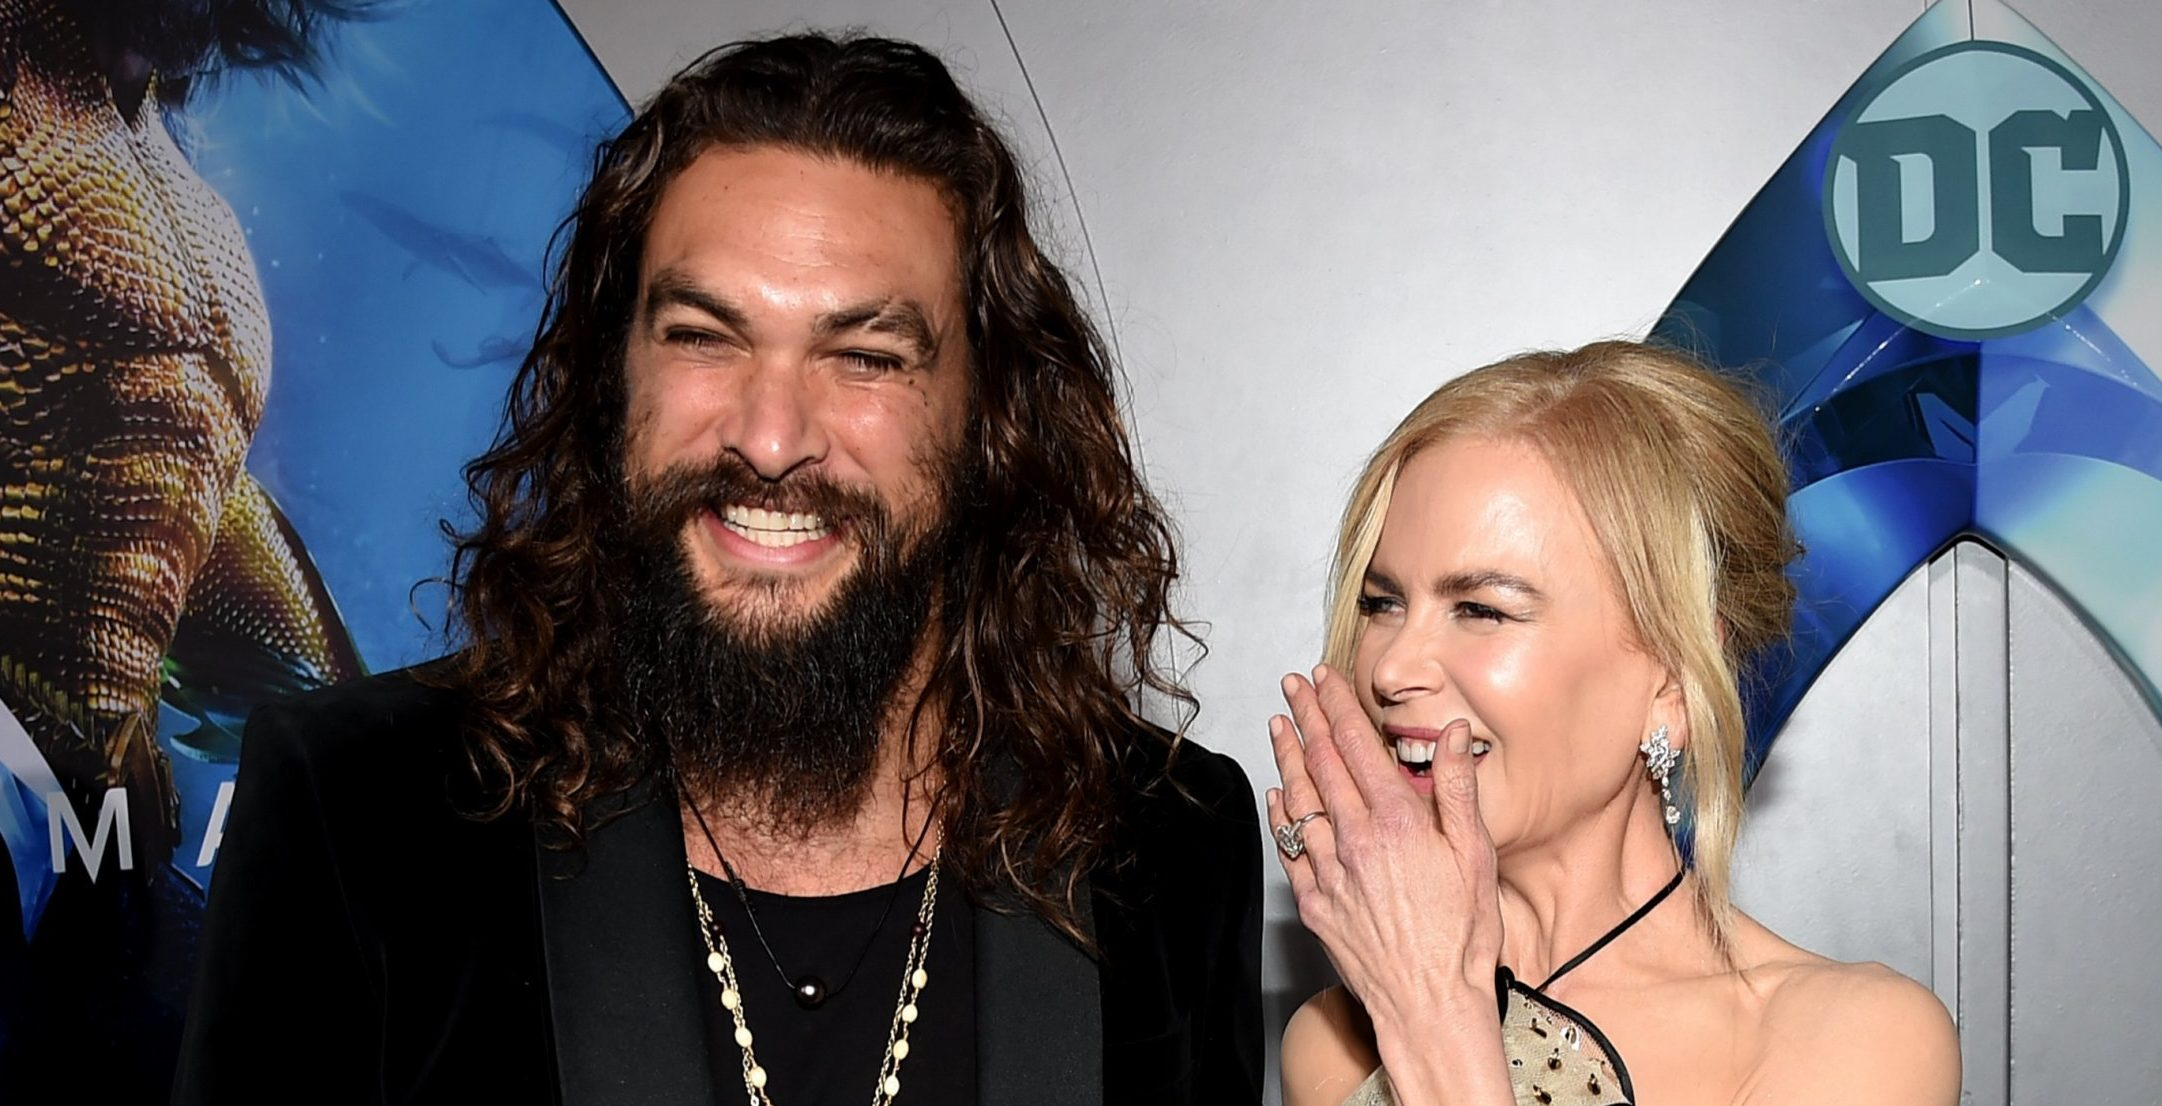 Jason Momoa got 'chills' filming emotional Aquaman scenes with Nicole Kidman